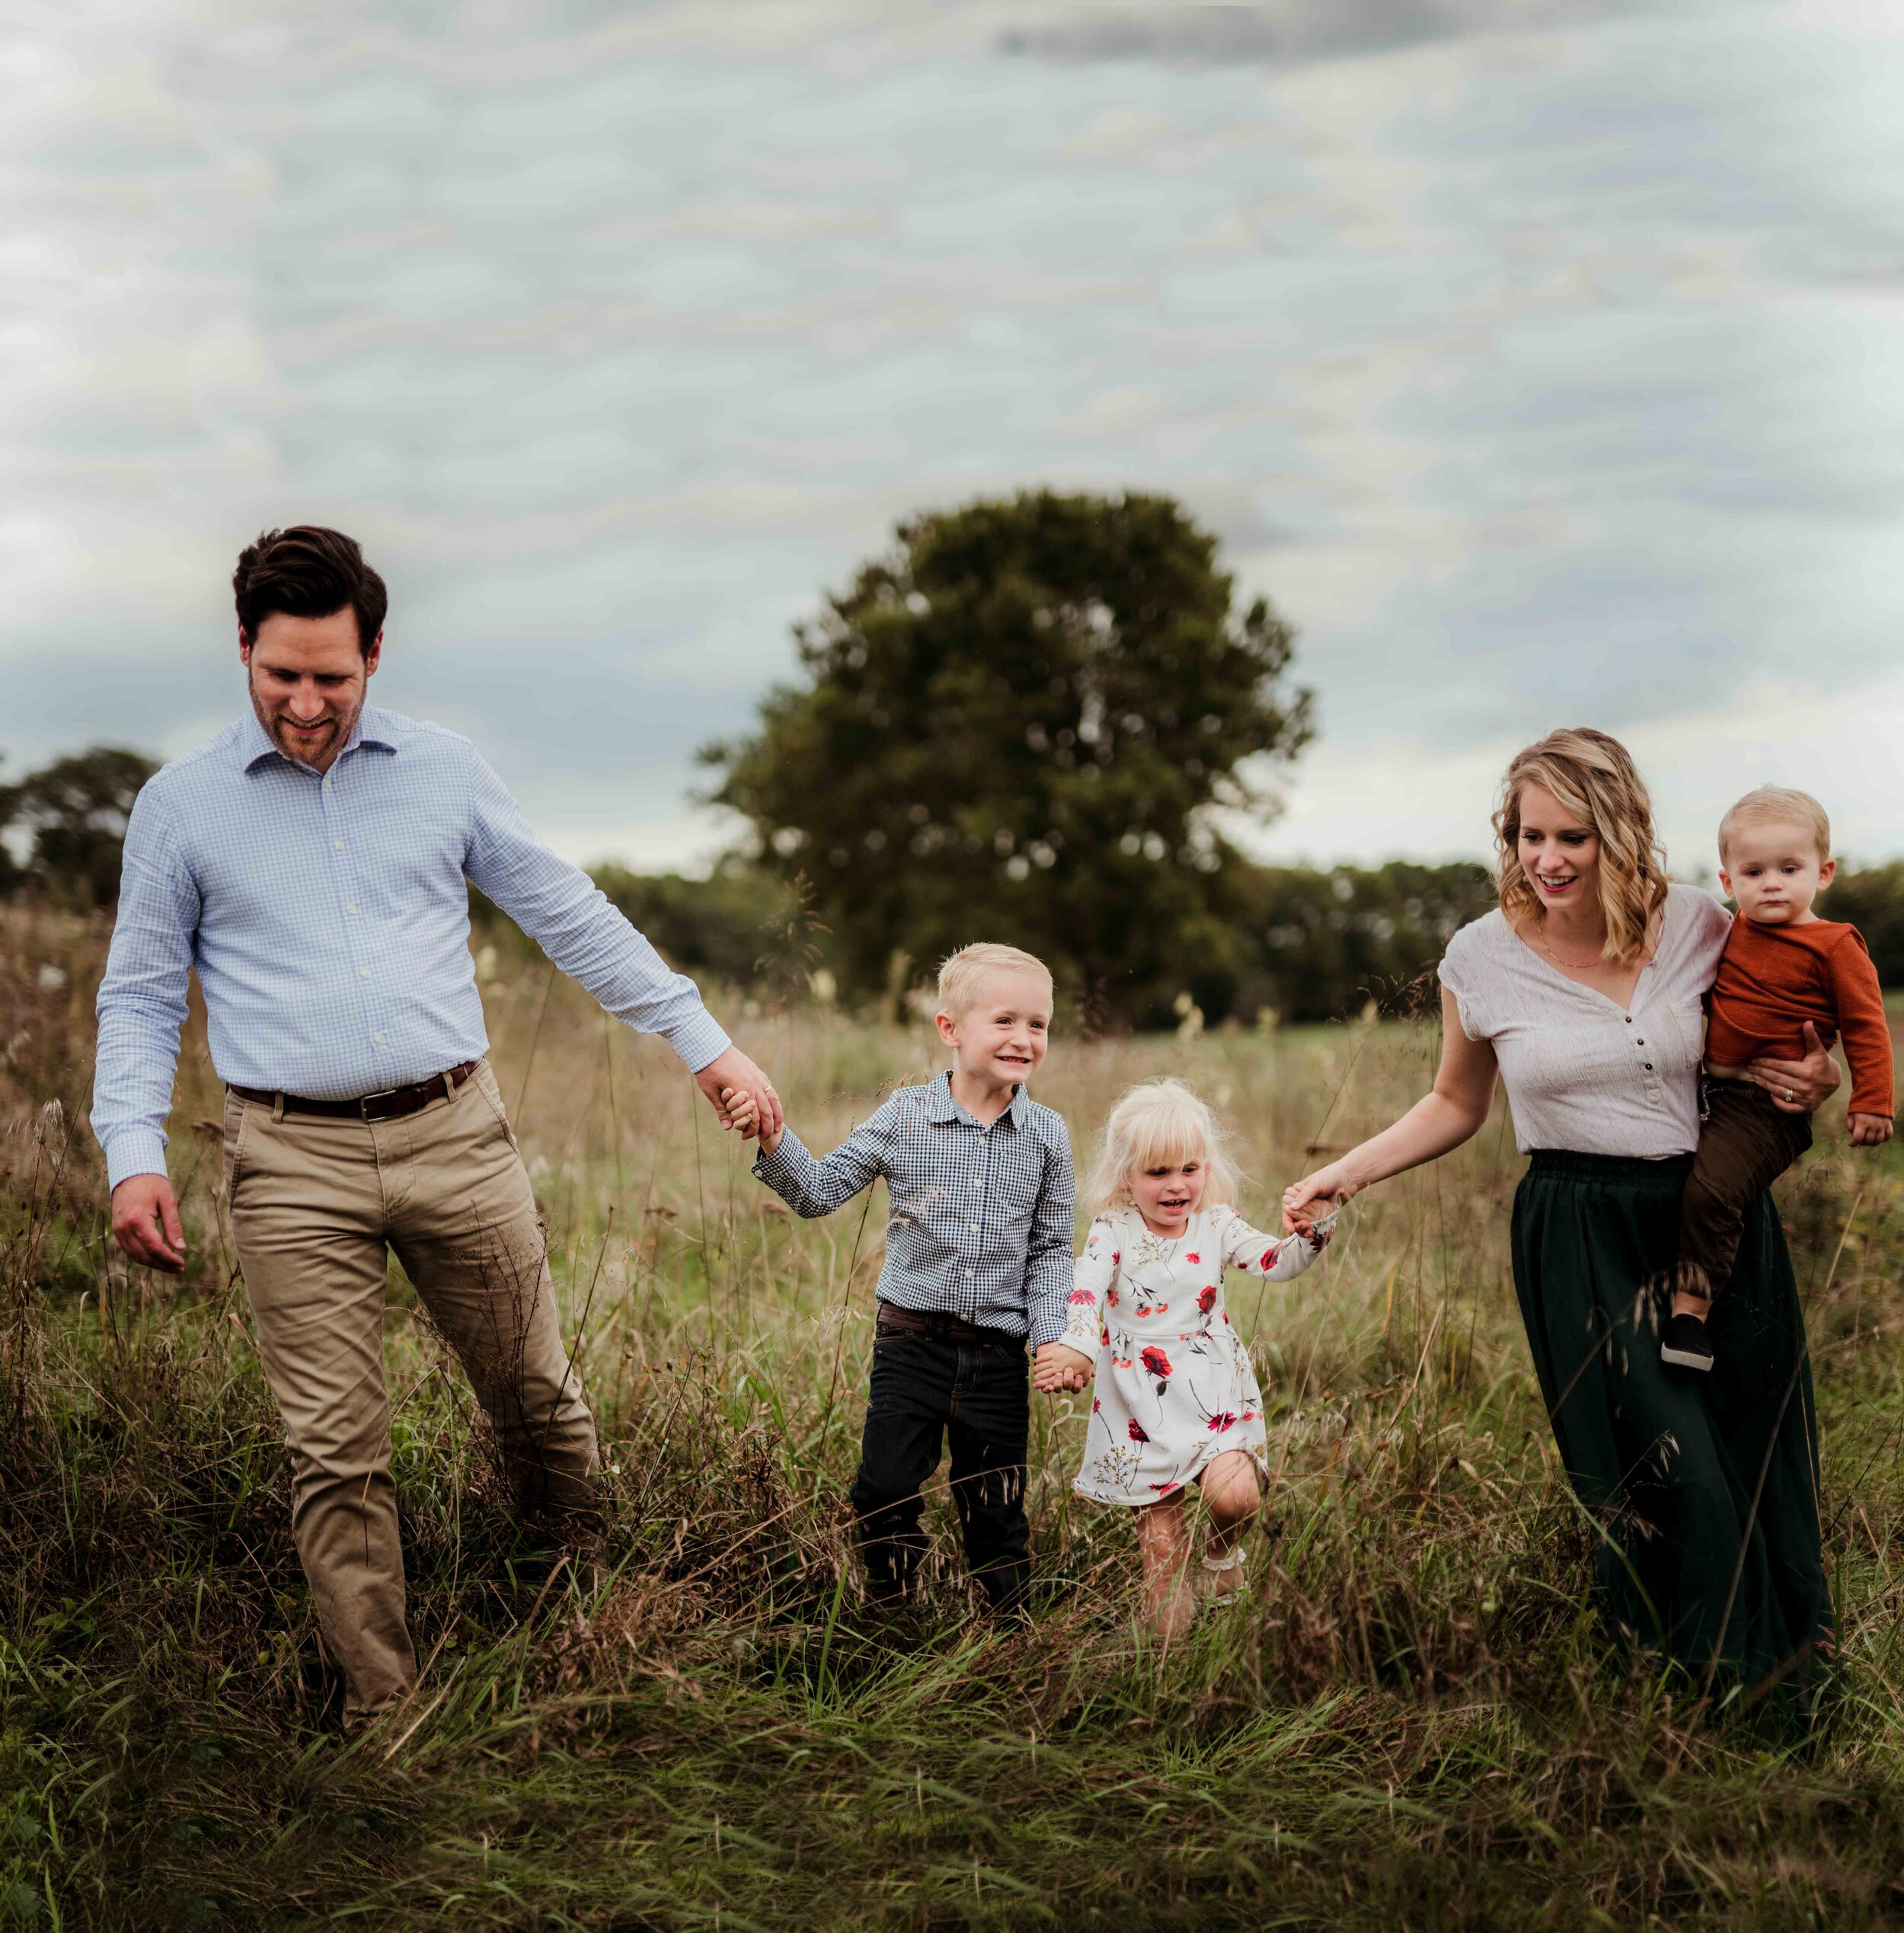 Fall Family Photos What To Wear Outfit And Inspiration Style Guide Kelly Mcphail Photography